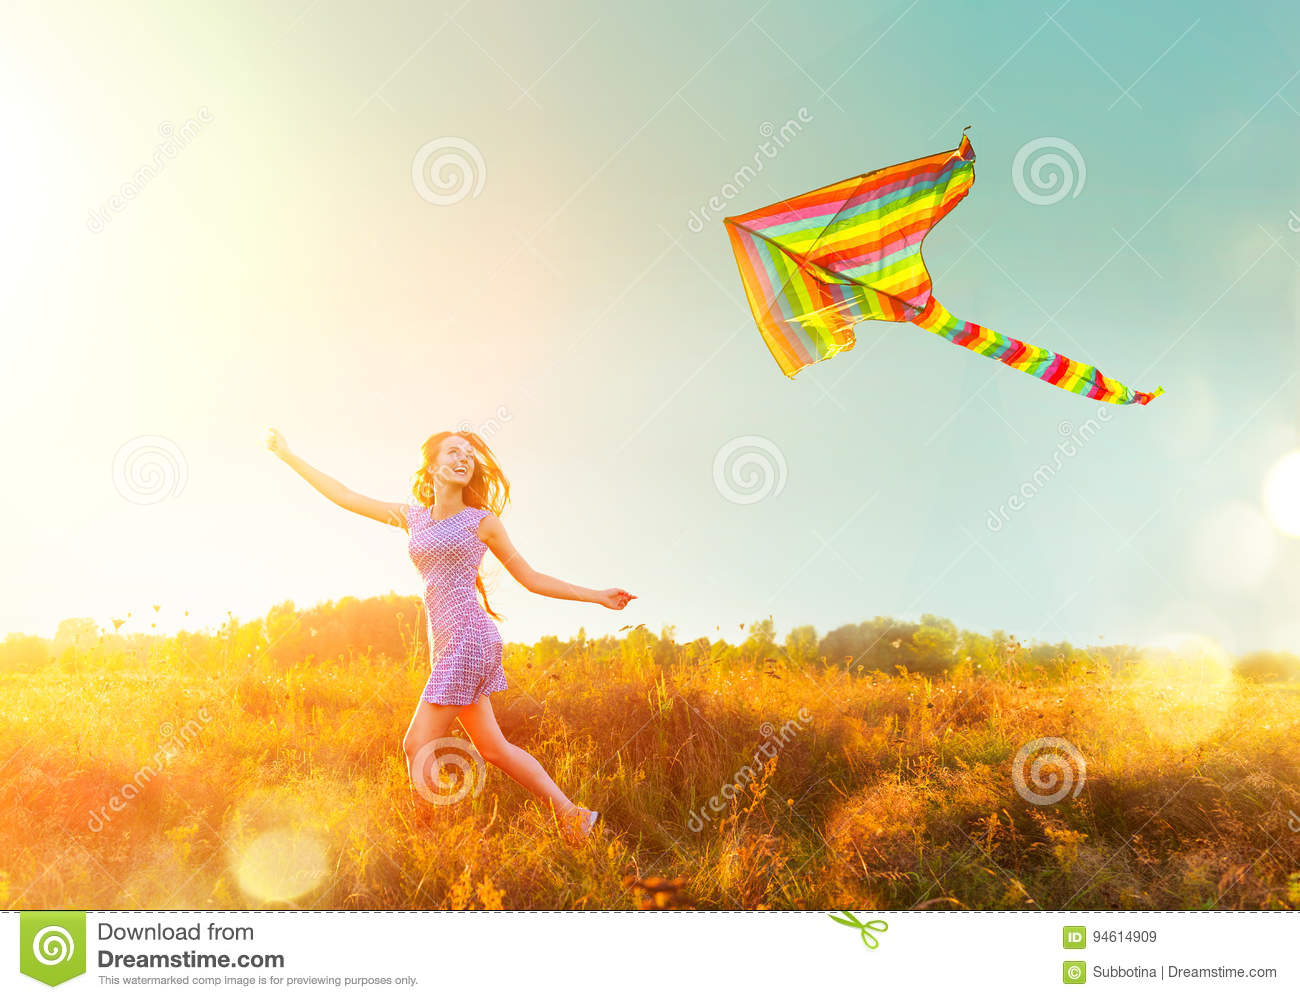 Beauty girl in short dress running with flying colorful kite